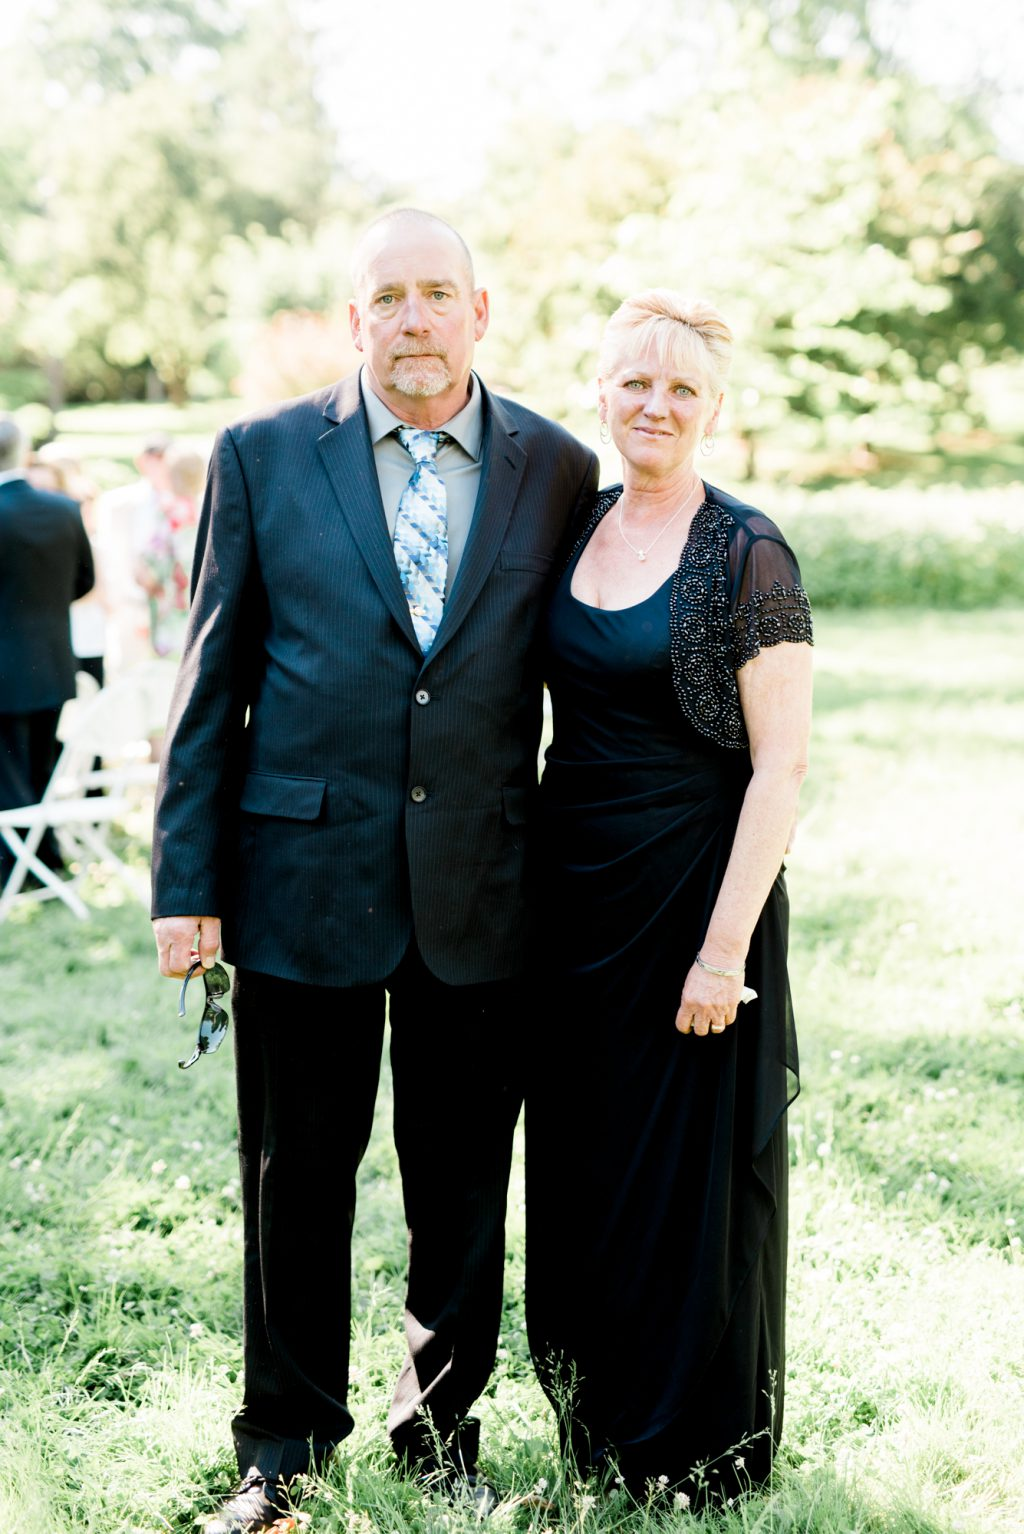 haley-richter-photo-west-chester-summer-wedding-boxcar-brewery-132